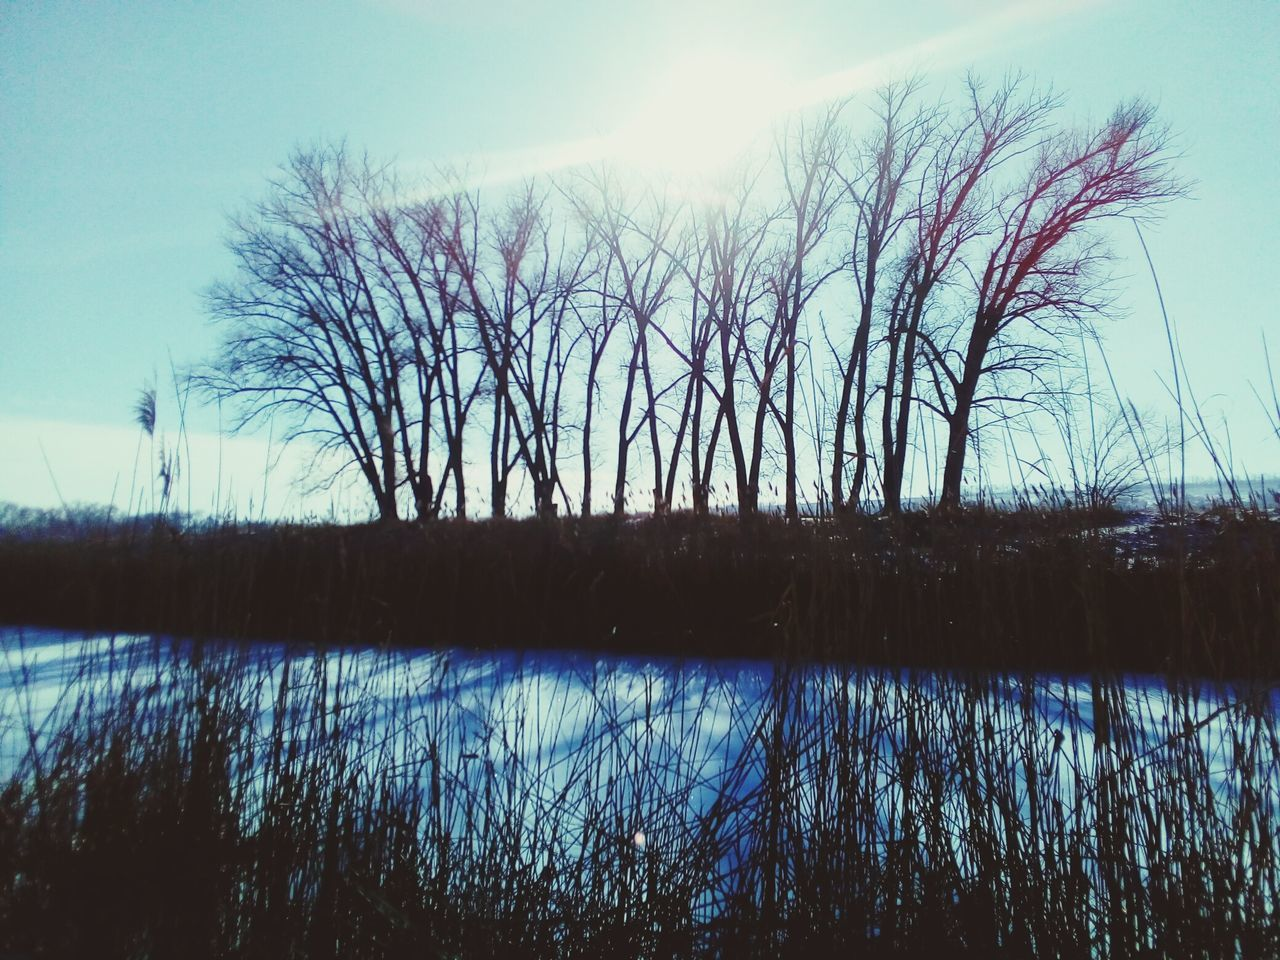 tranquil scene, reflection, tranquility, nature, scenics, beauty in nature, lake, sky, bare tree, outdoors, water, tree, no people, silhouette, grass, plant, landscape, day, sunset